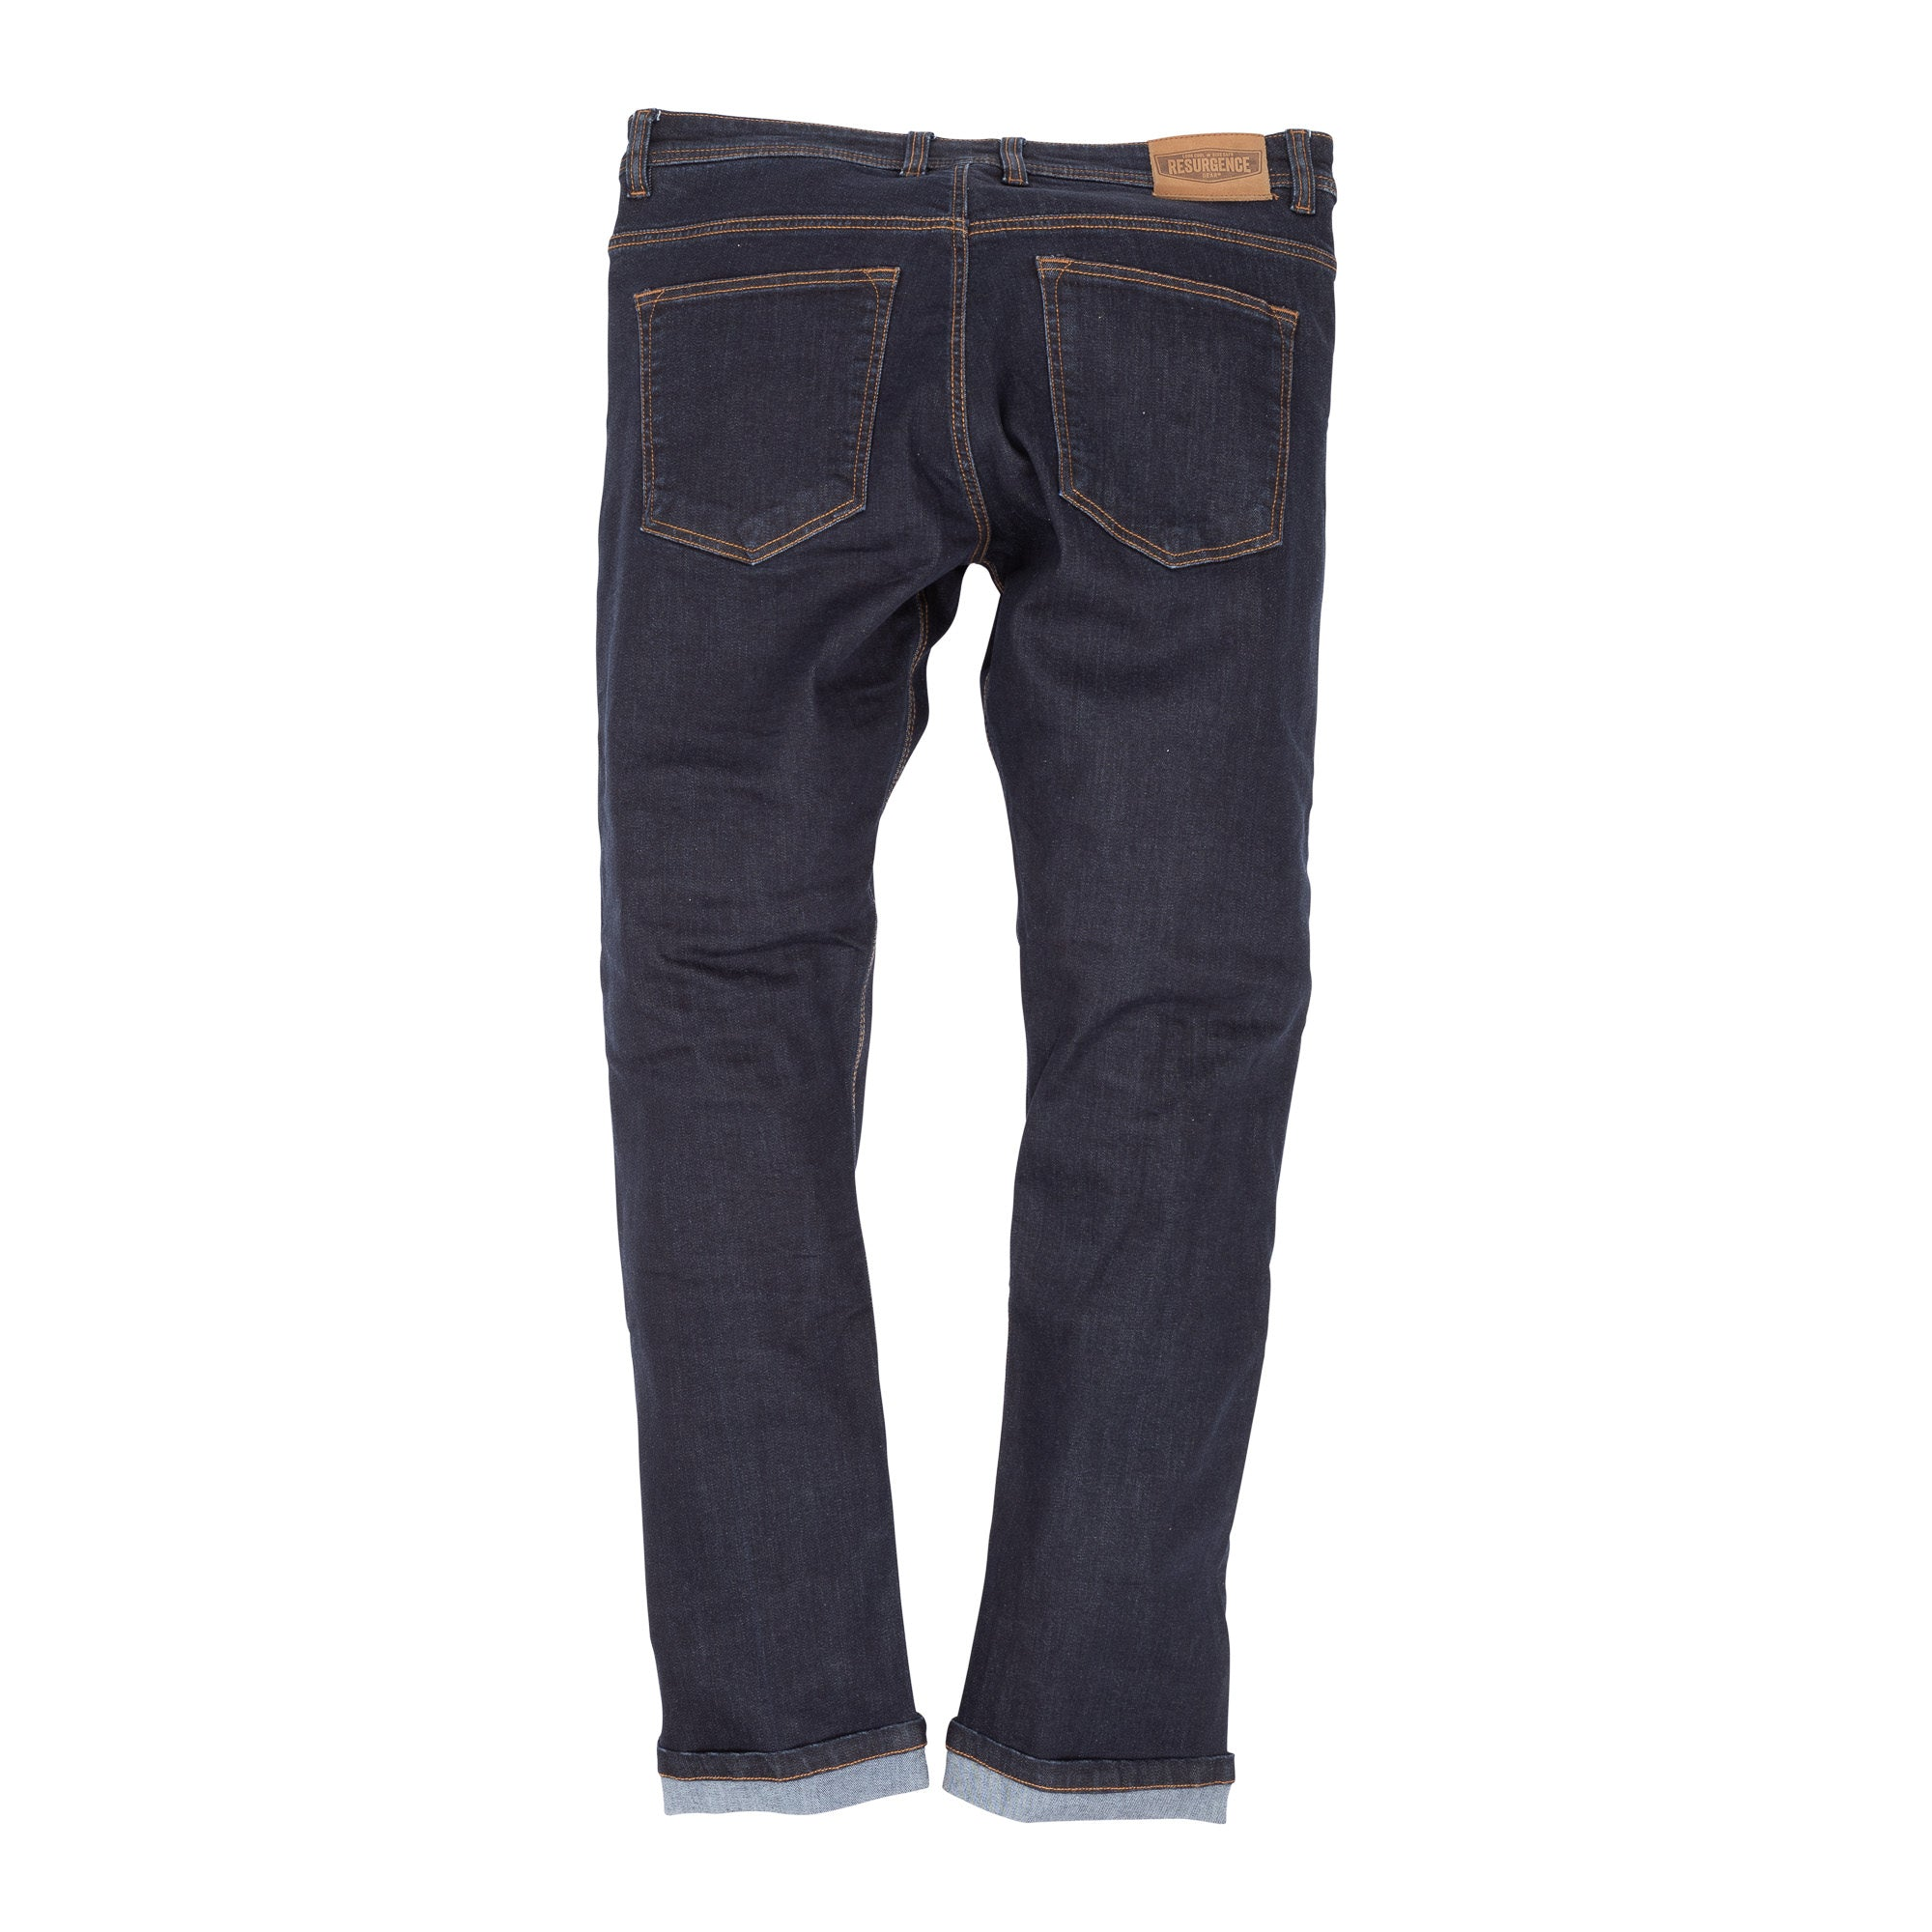 Resurgence Gear 2020 Warrior Indigo Blue PEKEV Lite Motorcycle Jeans